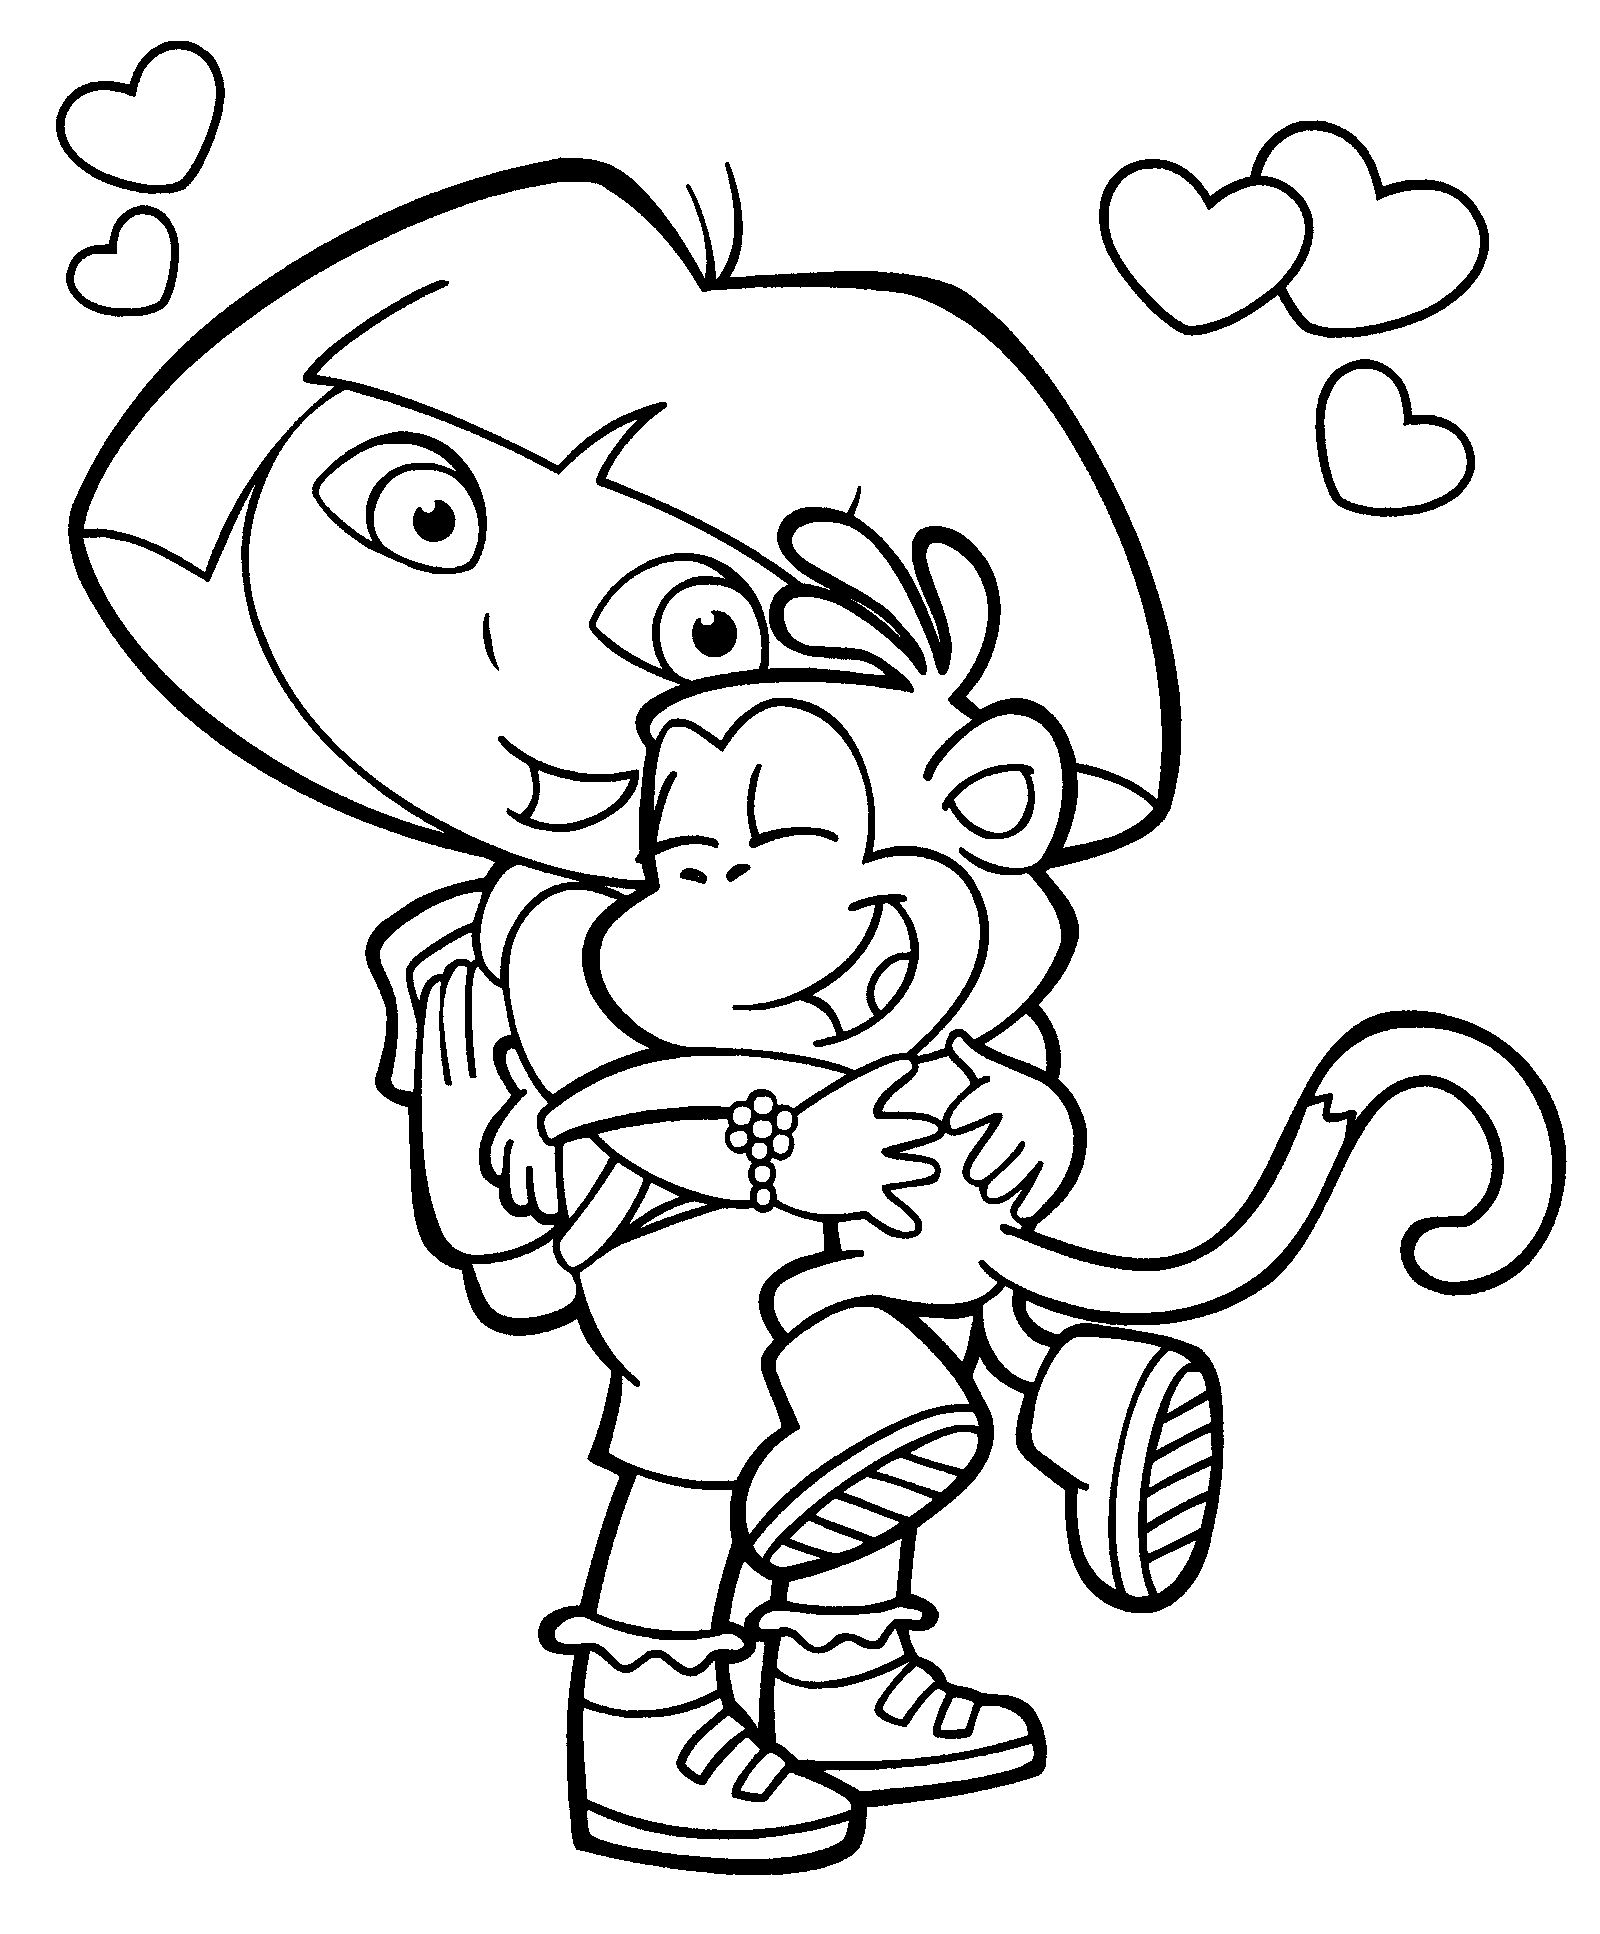 free dora coloring pages - free dora pictures to print and color dora coloring